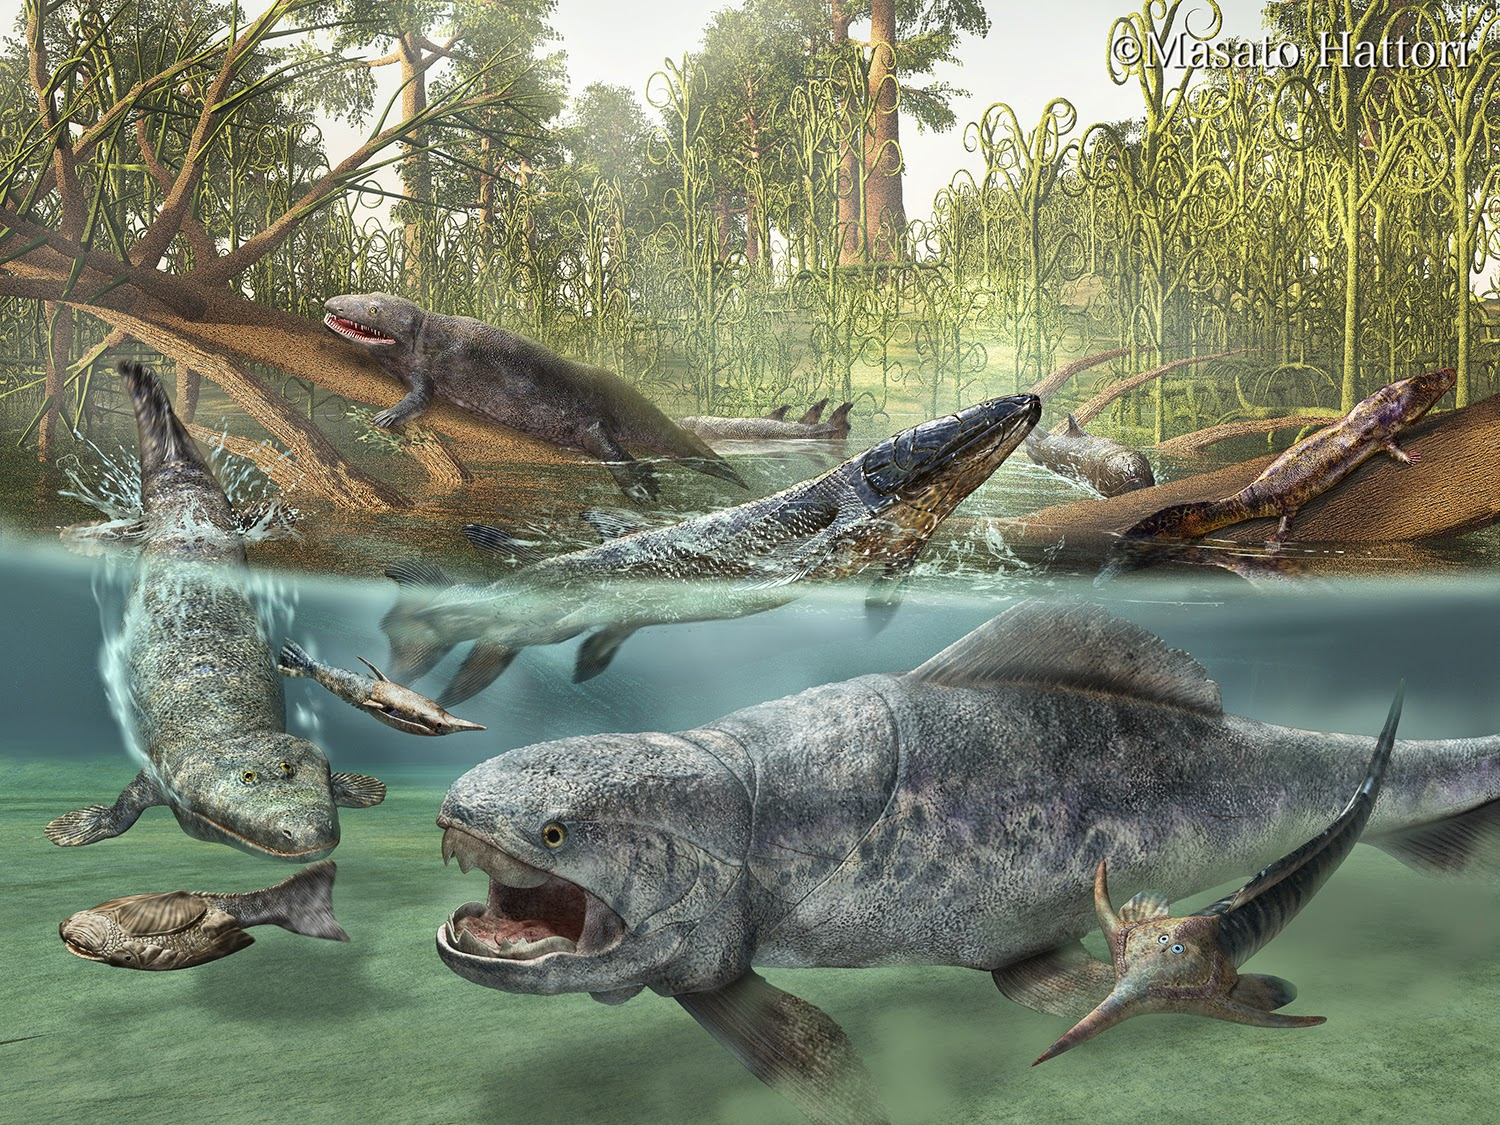 Devonian period--Prehistoric amphibians. The one looks very gatorish. By Masato Hattori